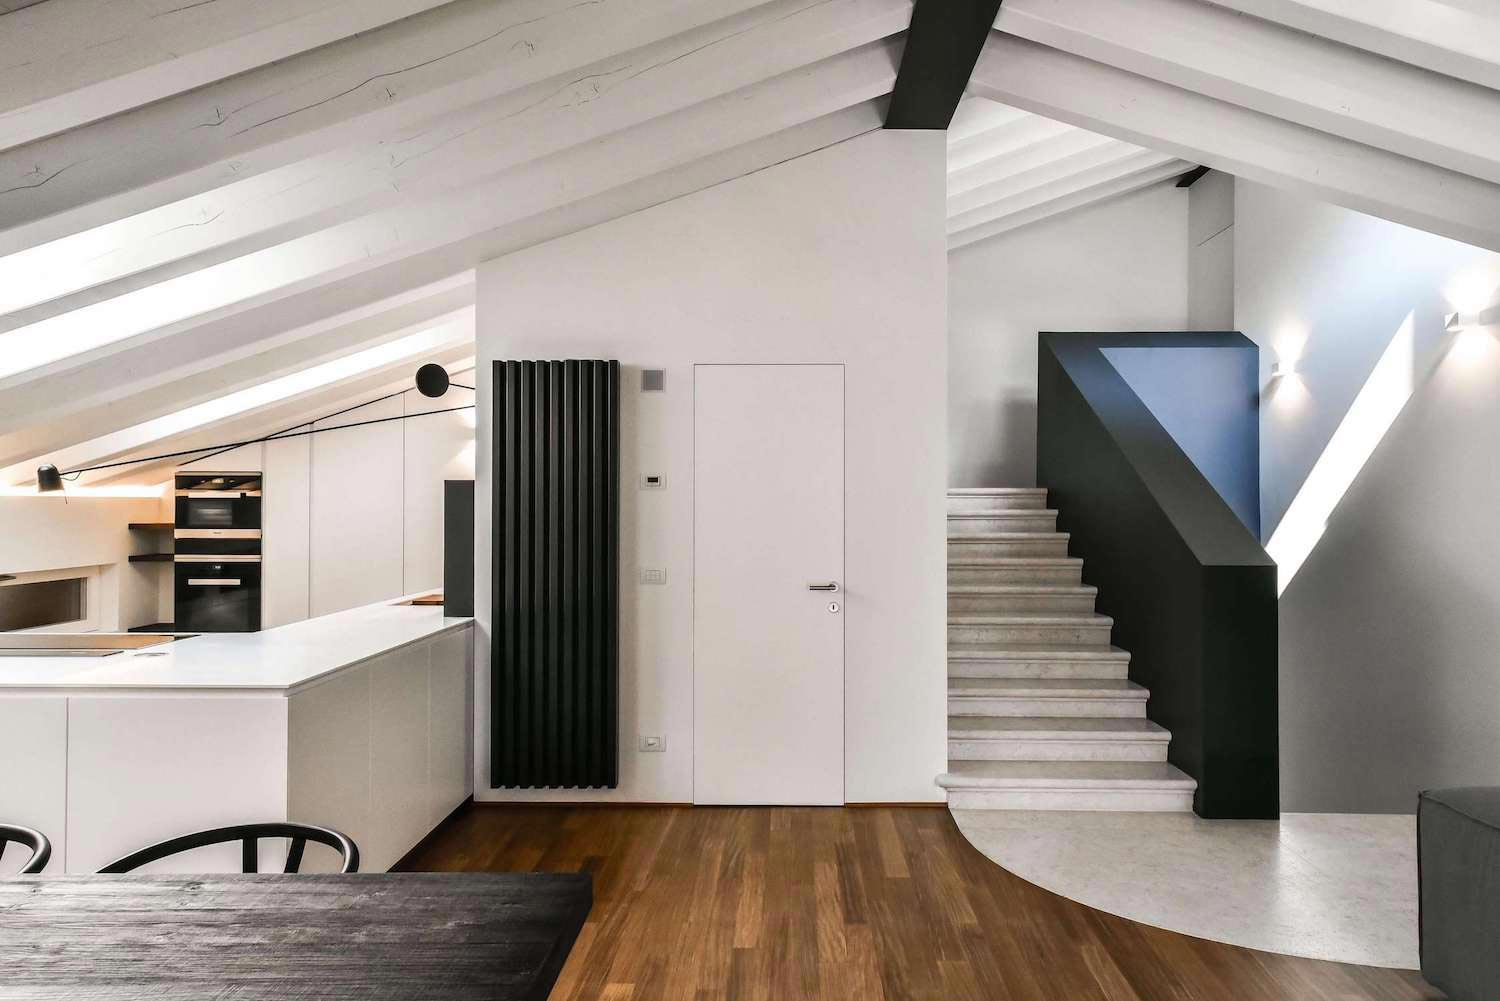 Renovation and extension of an old attic into a for Iblaresort design boutique hotel ragusa rg